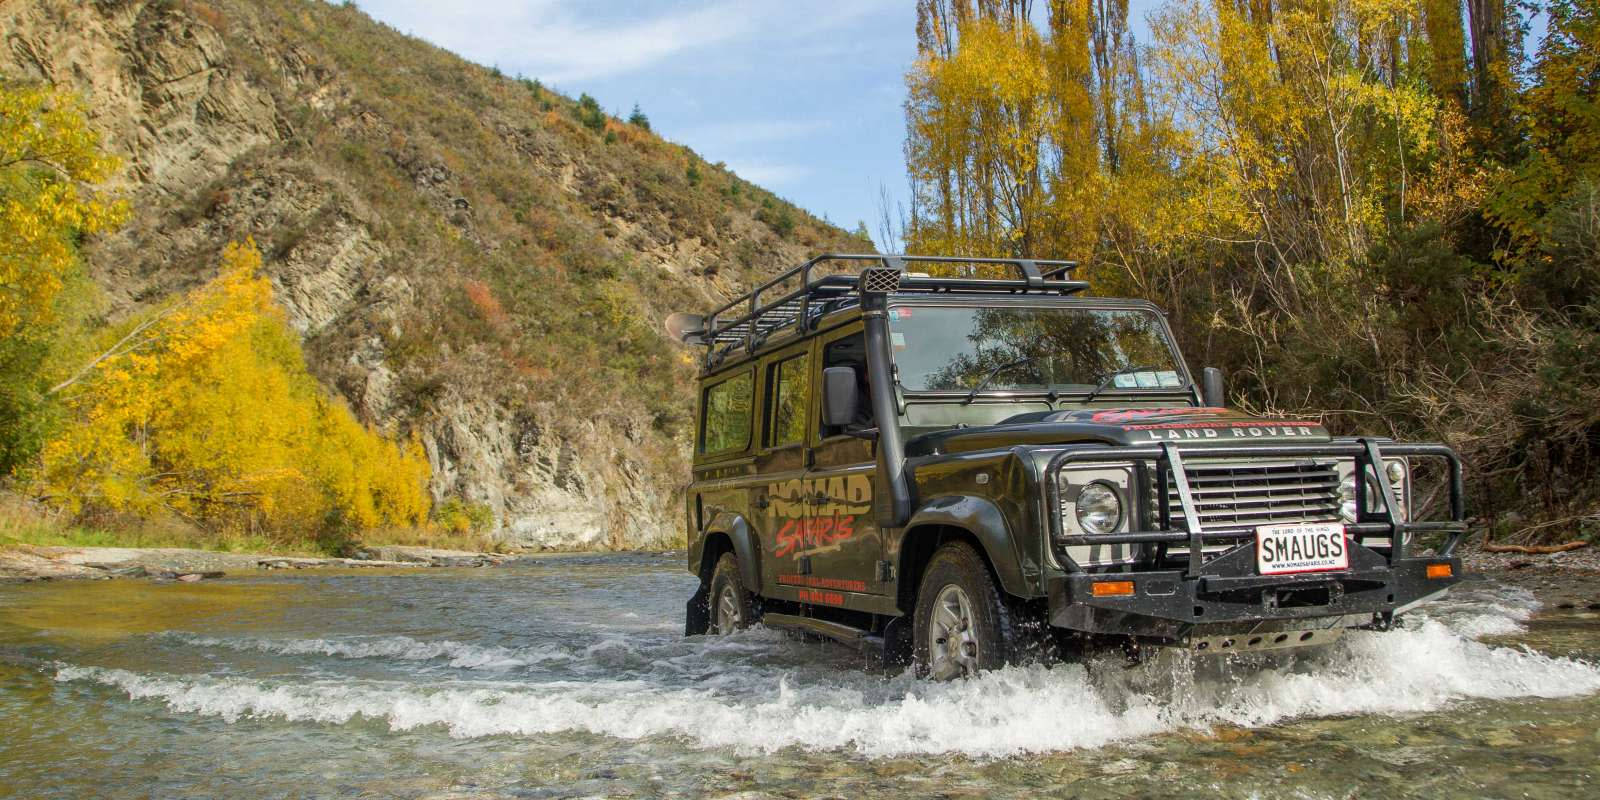 Nomad 4WD Safaris river crossing